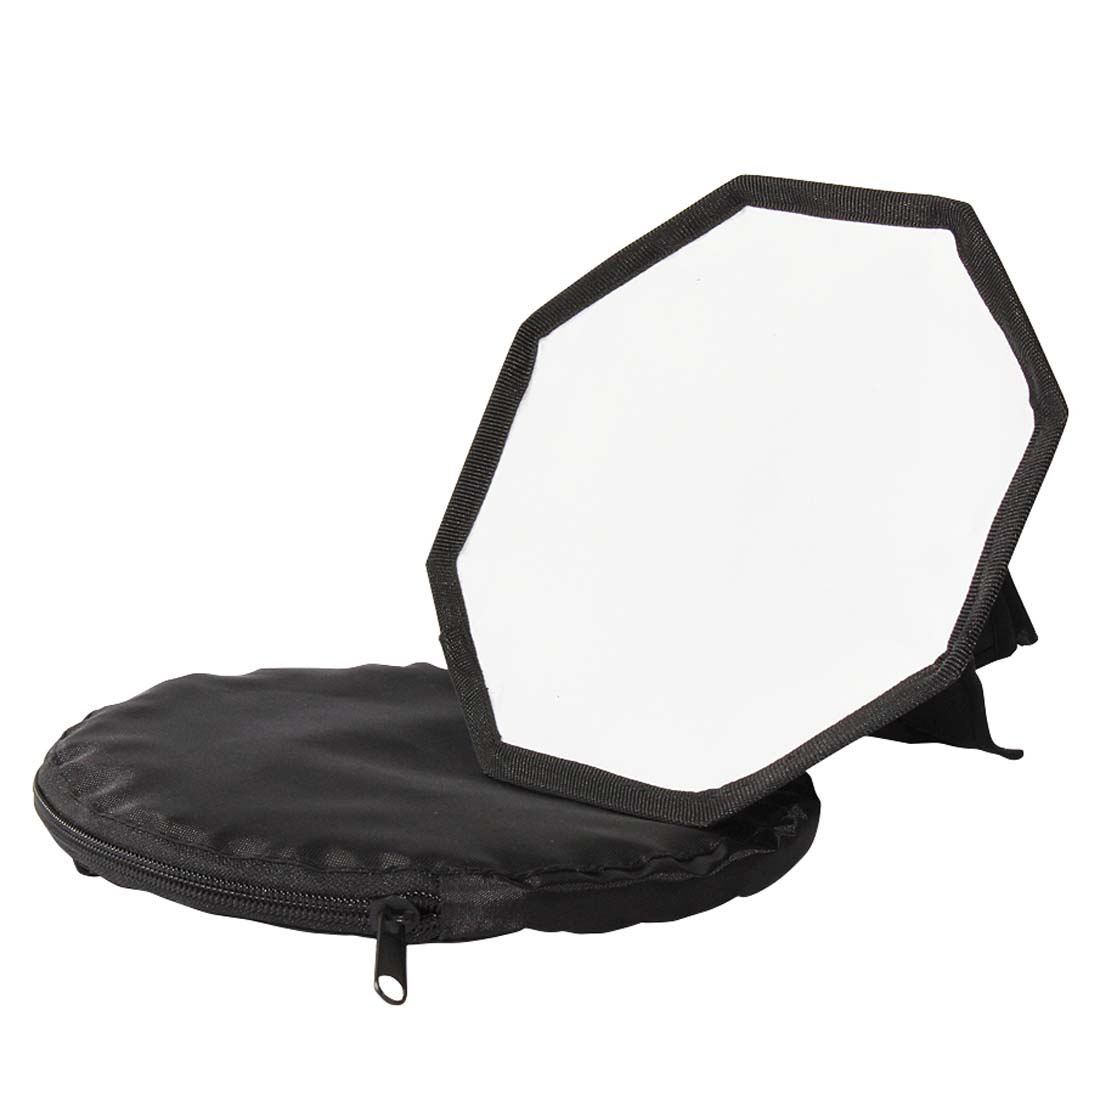 Softbox Metz Mini Octagon SB 20-20